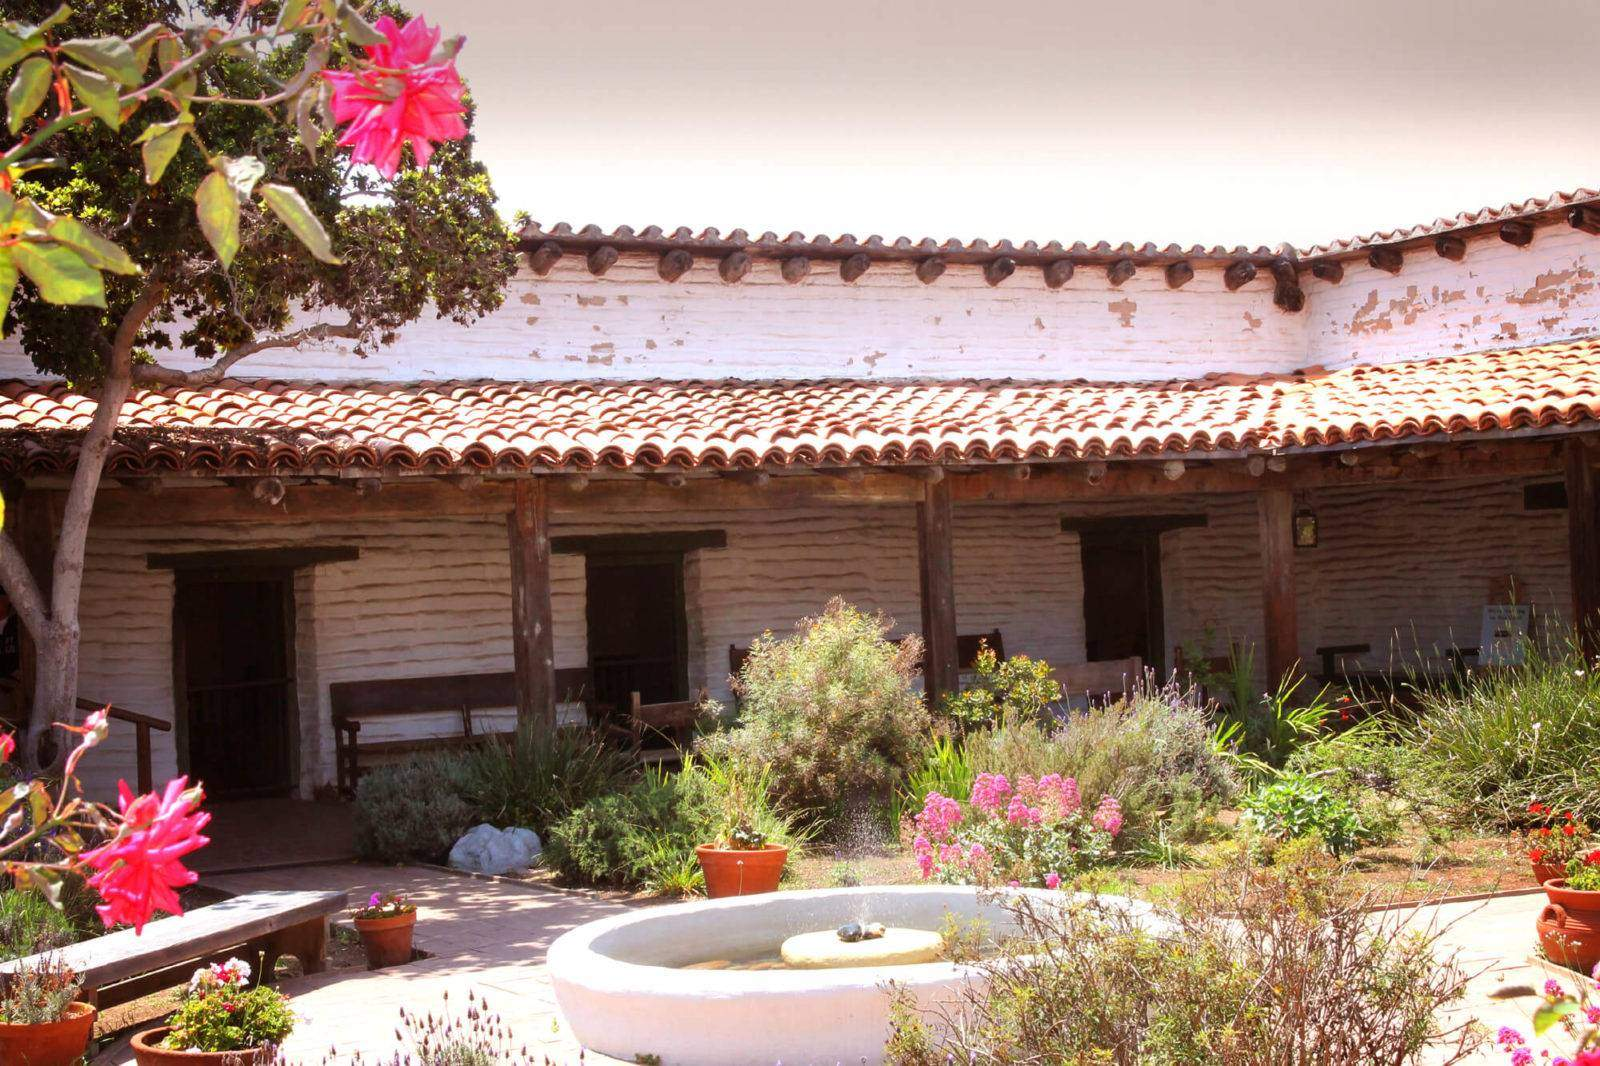 Visit La Casa de Estudillo in Old Town, one of the oldest and most historic homes in San Diego!